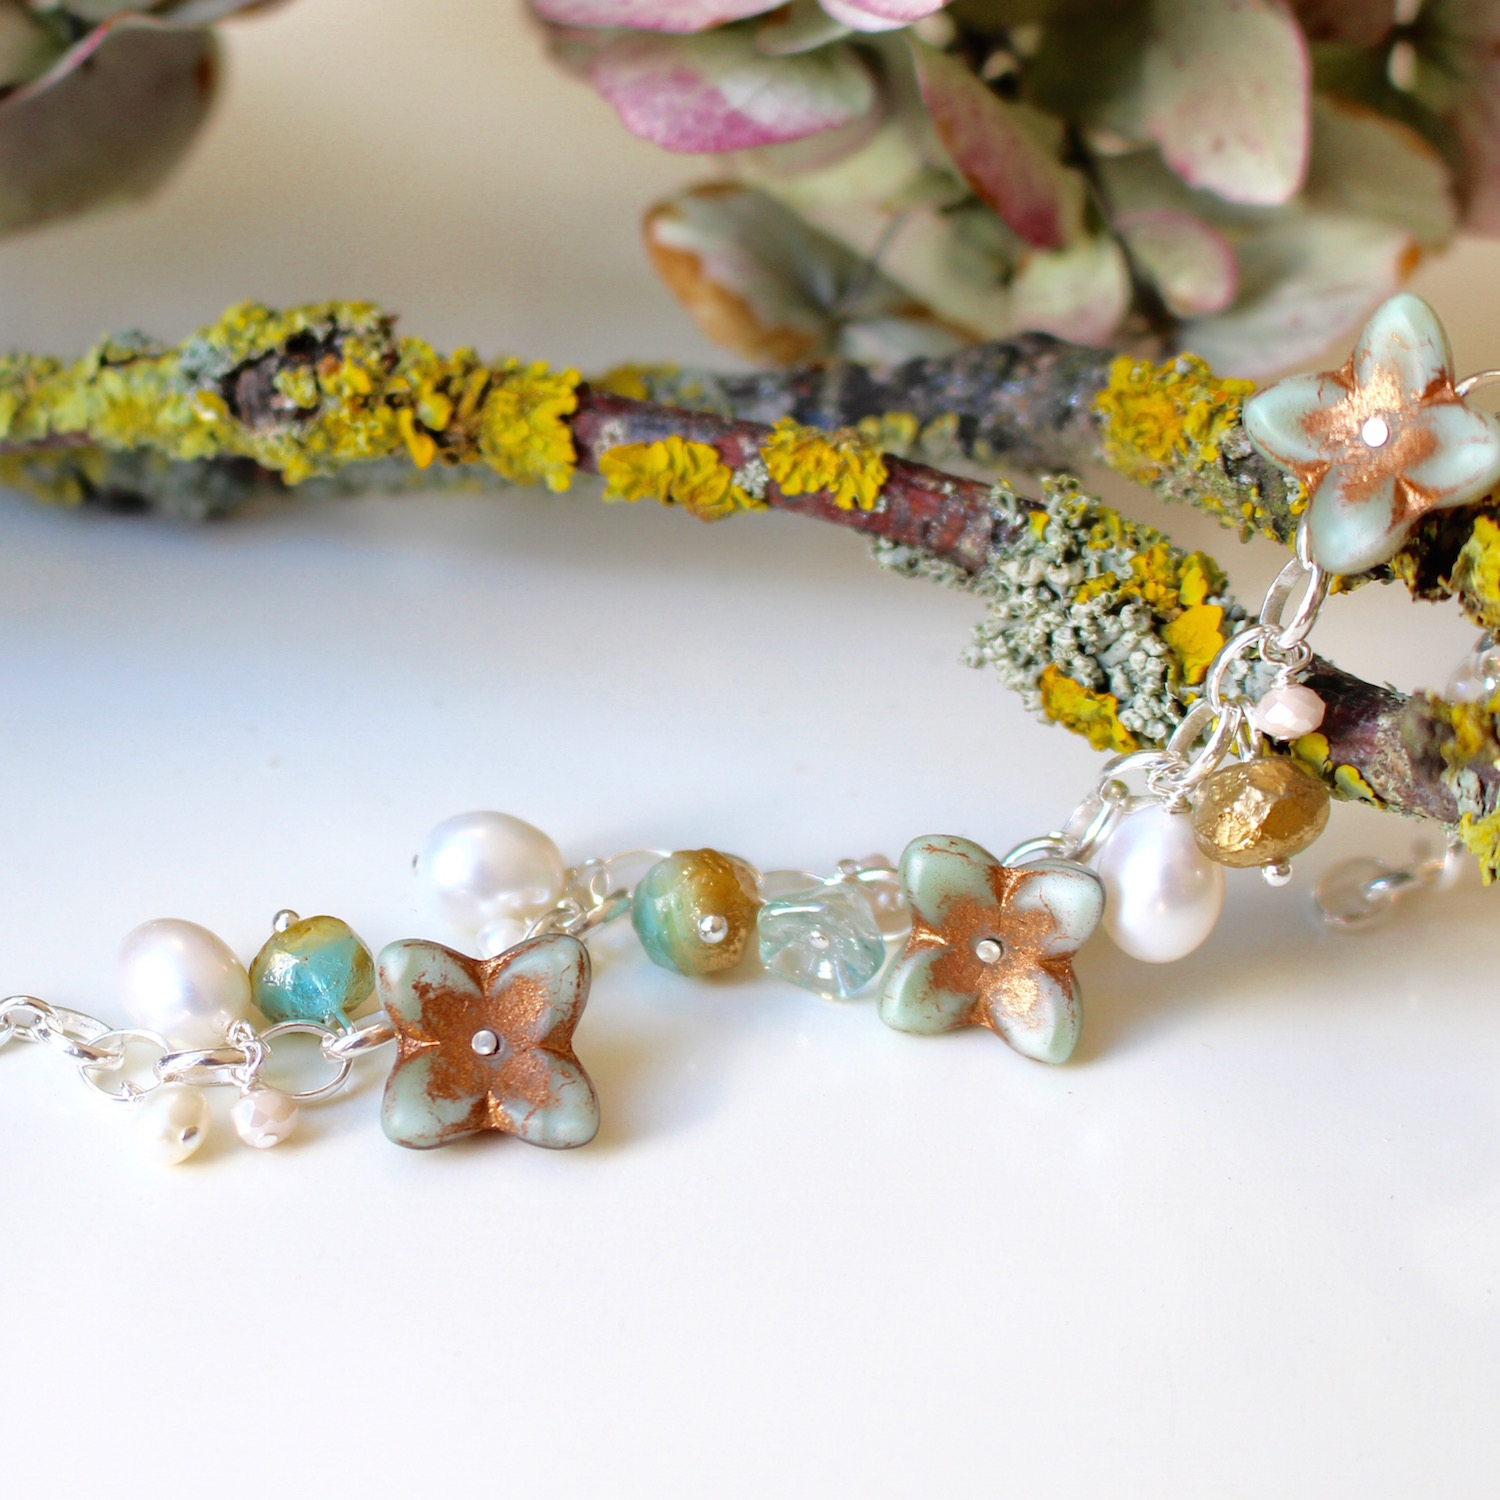 Blue Hydrangea Bracelet by Nina Parker. Glass, pearls and Sterling silver.